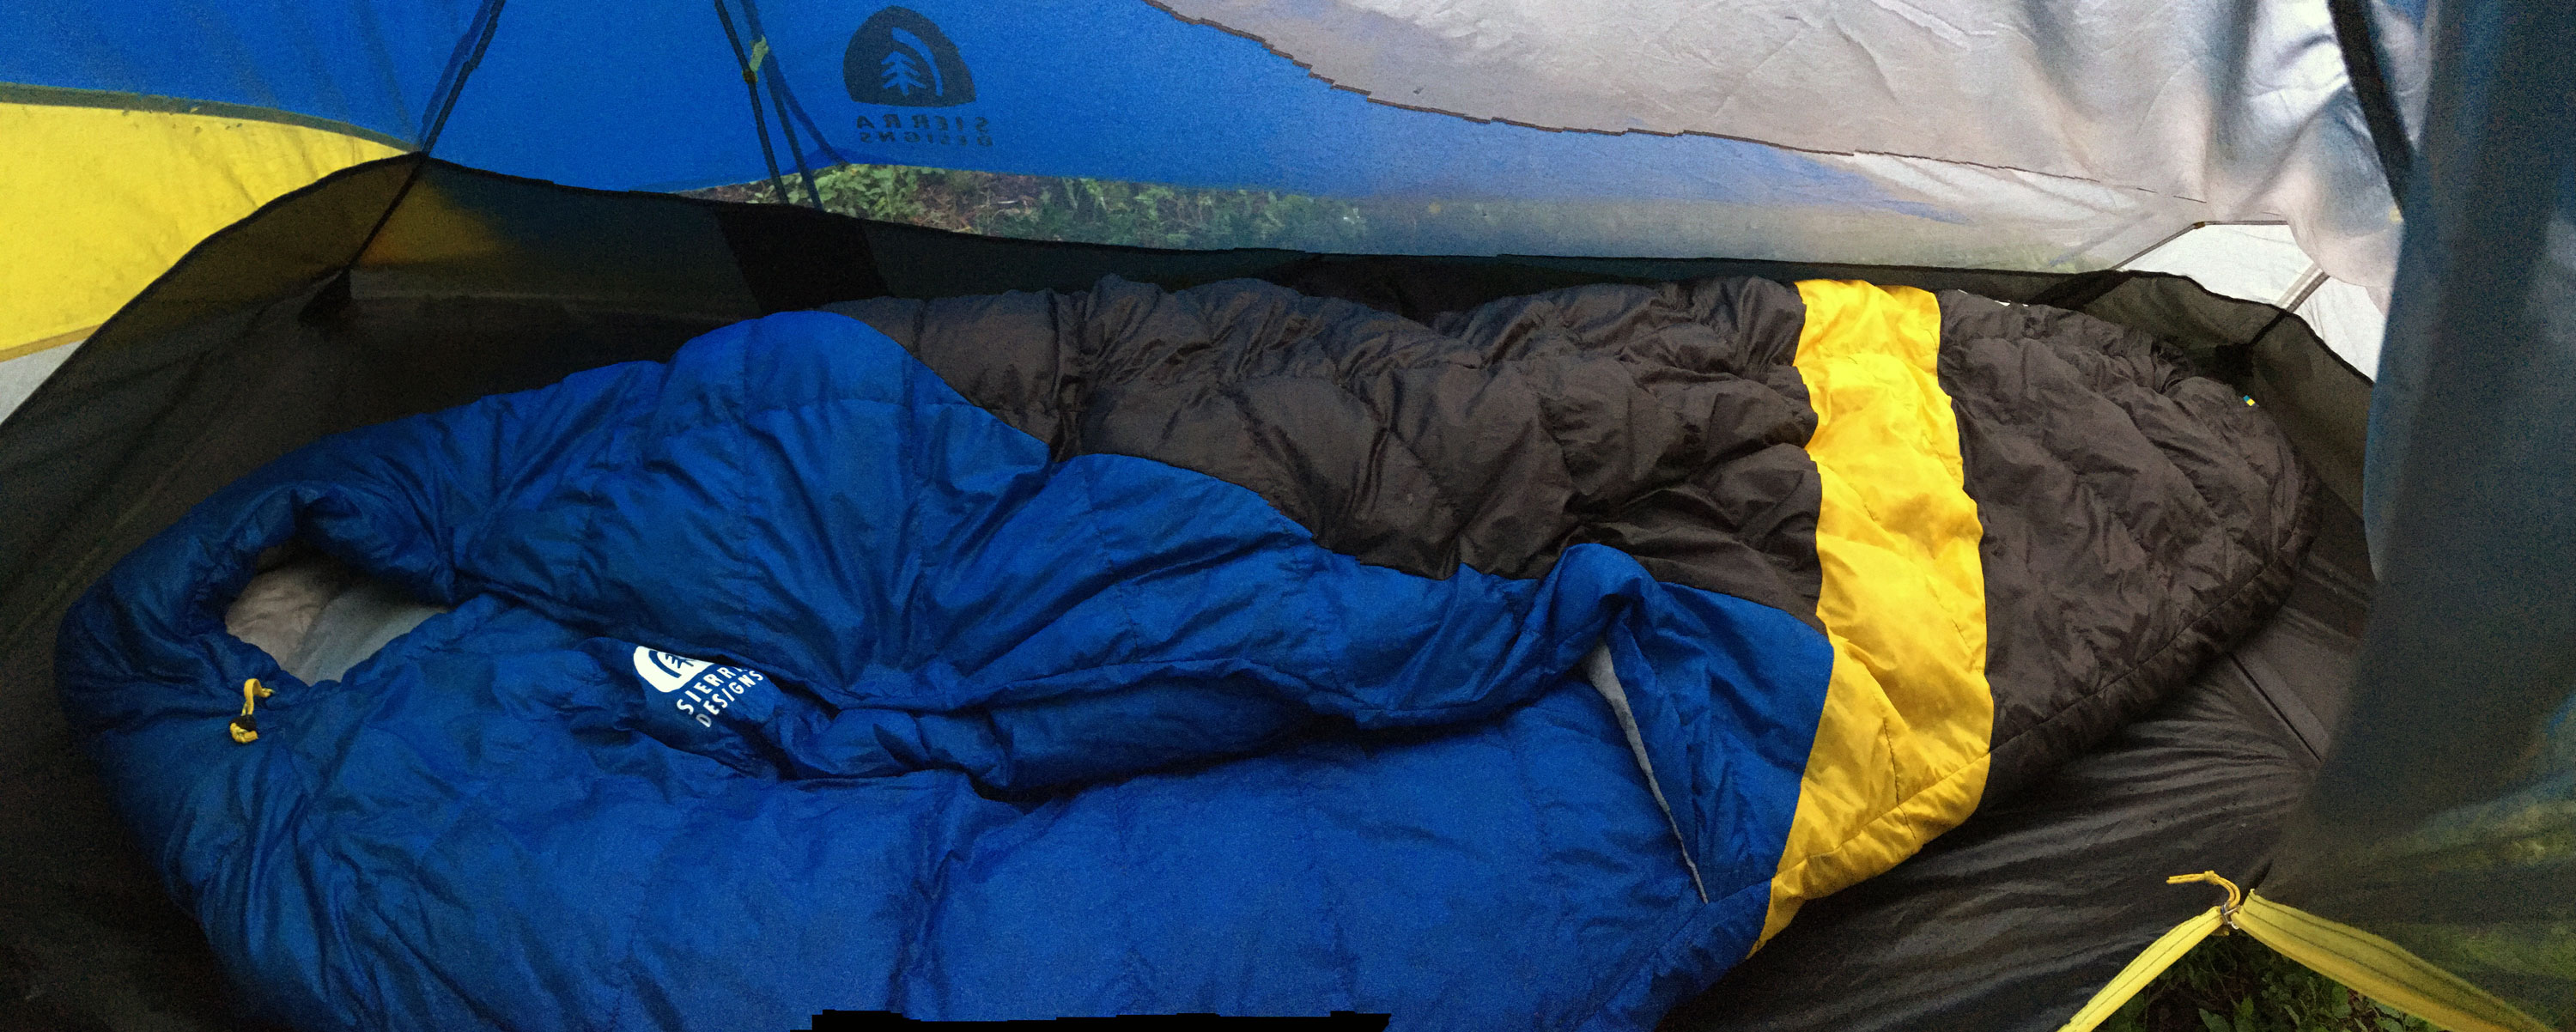 Sierra Designs High Side 1 person tent Review & Lean-To Shelter: First Look At u0027High Sideu0027 Tent